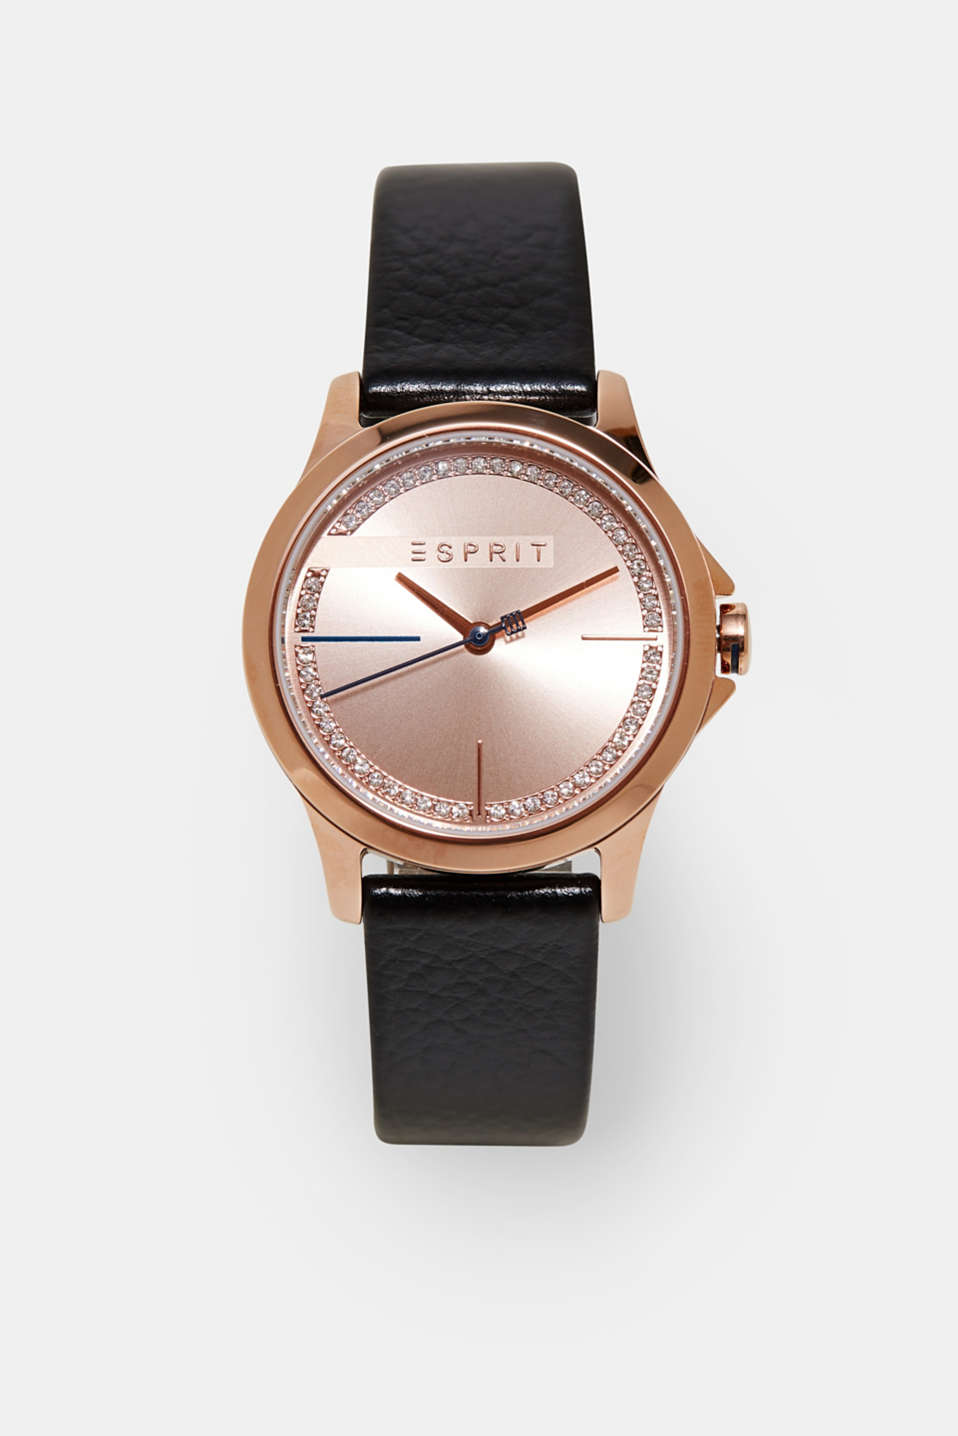 Esprit - Rose gold watch with leather strap